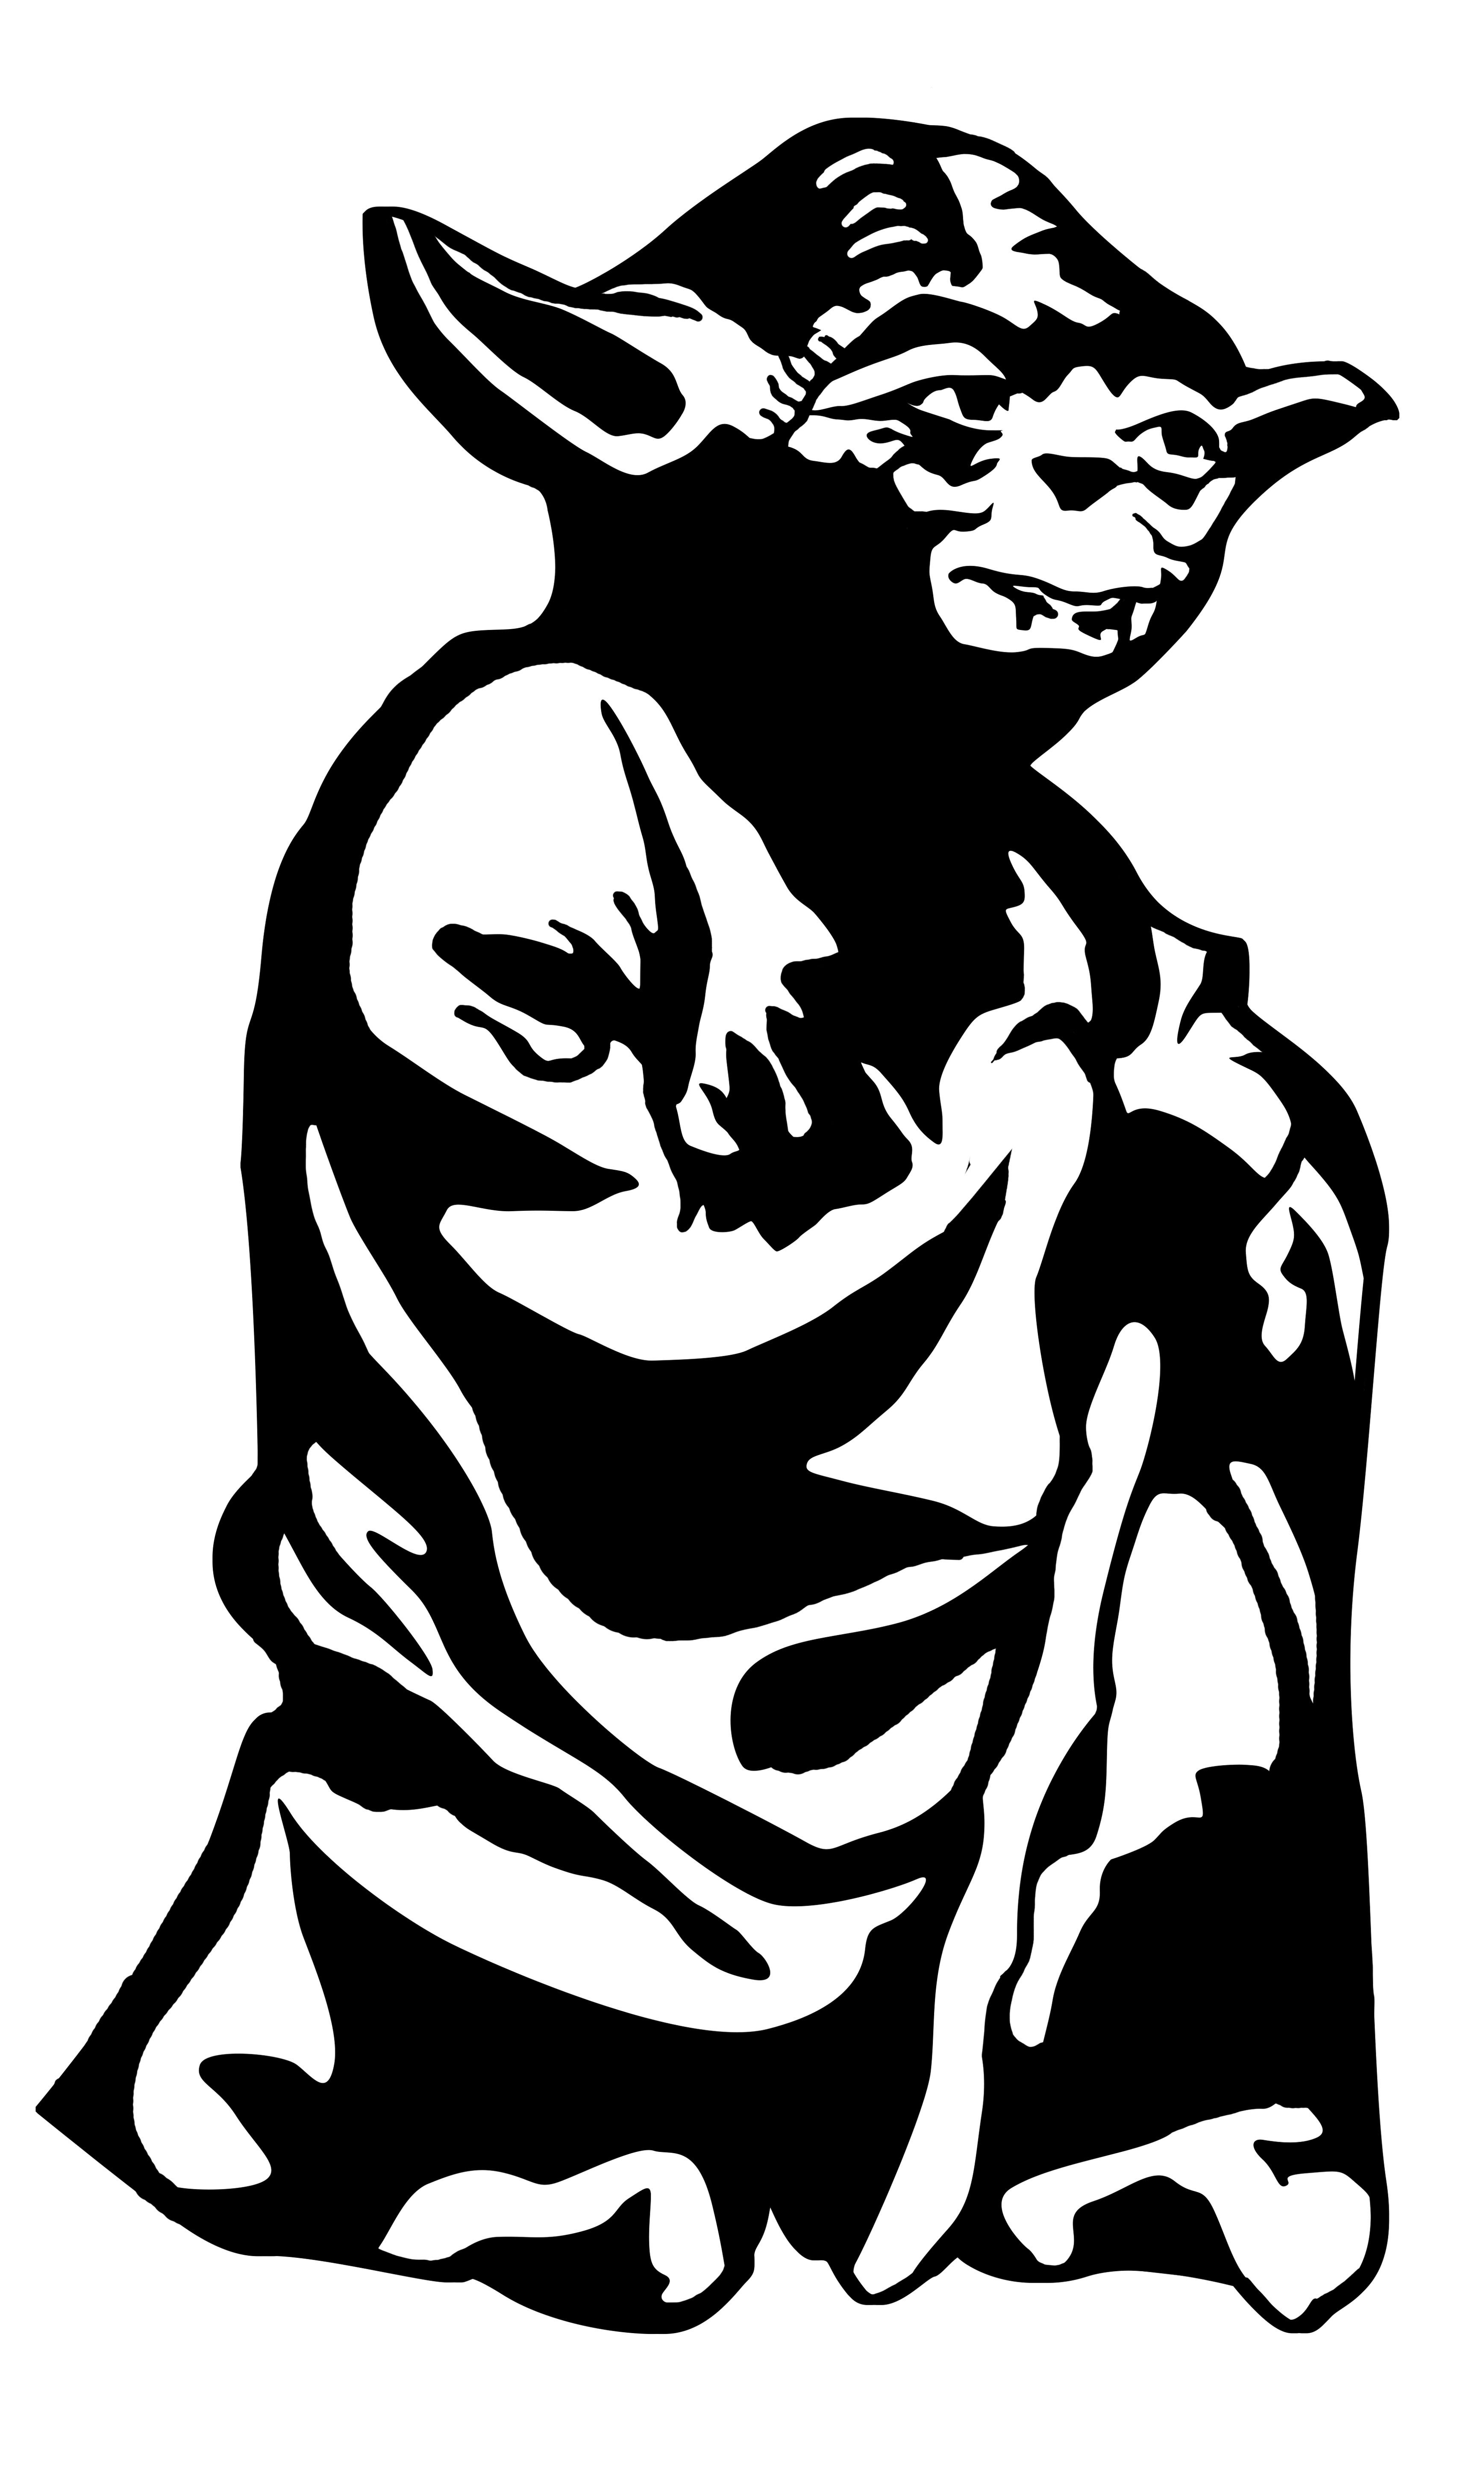 Yoda life size stencil for kids room I made this